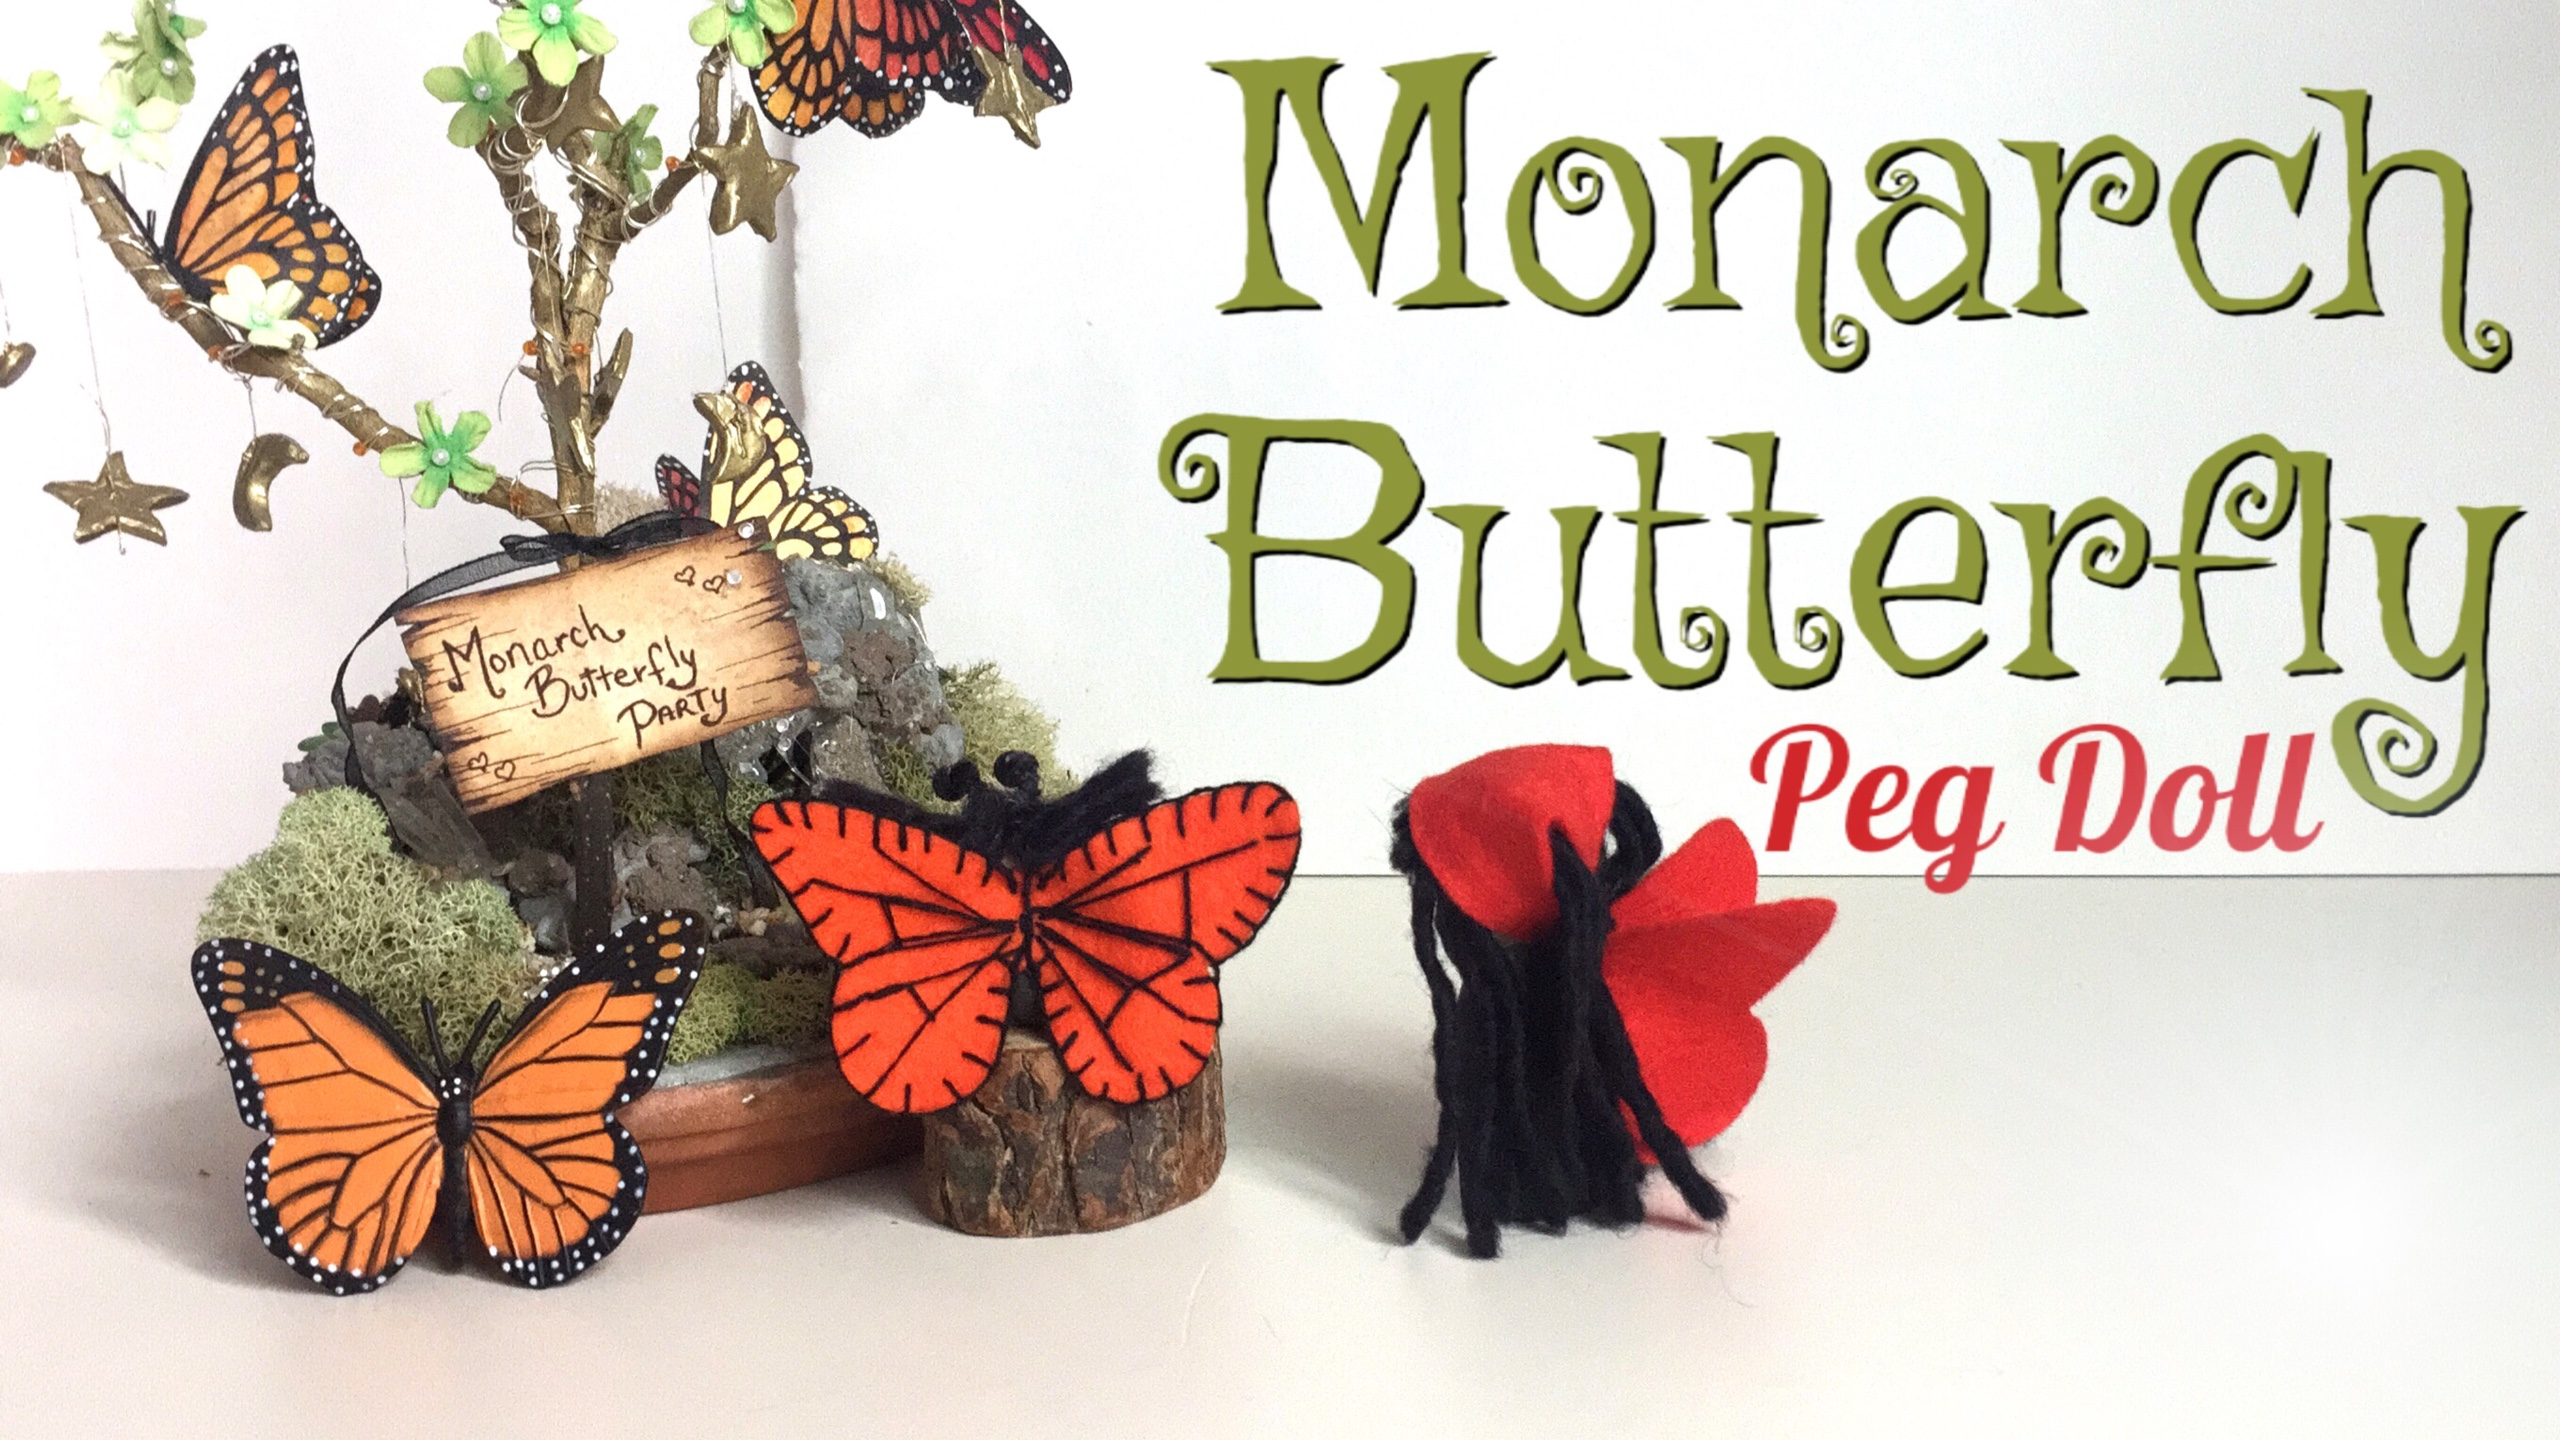 MONARCH BUTTERFLY PEG DOLL